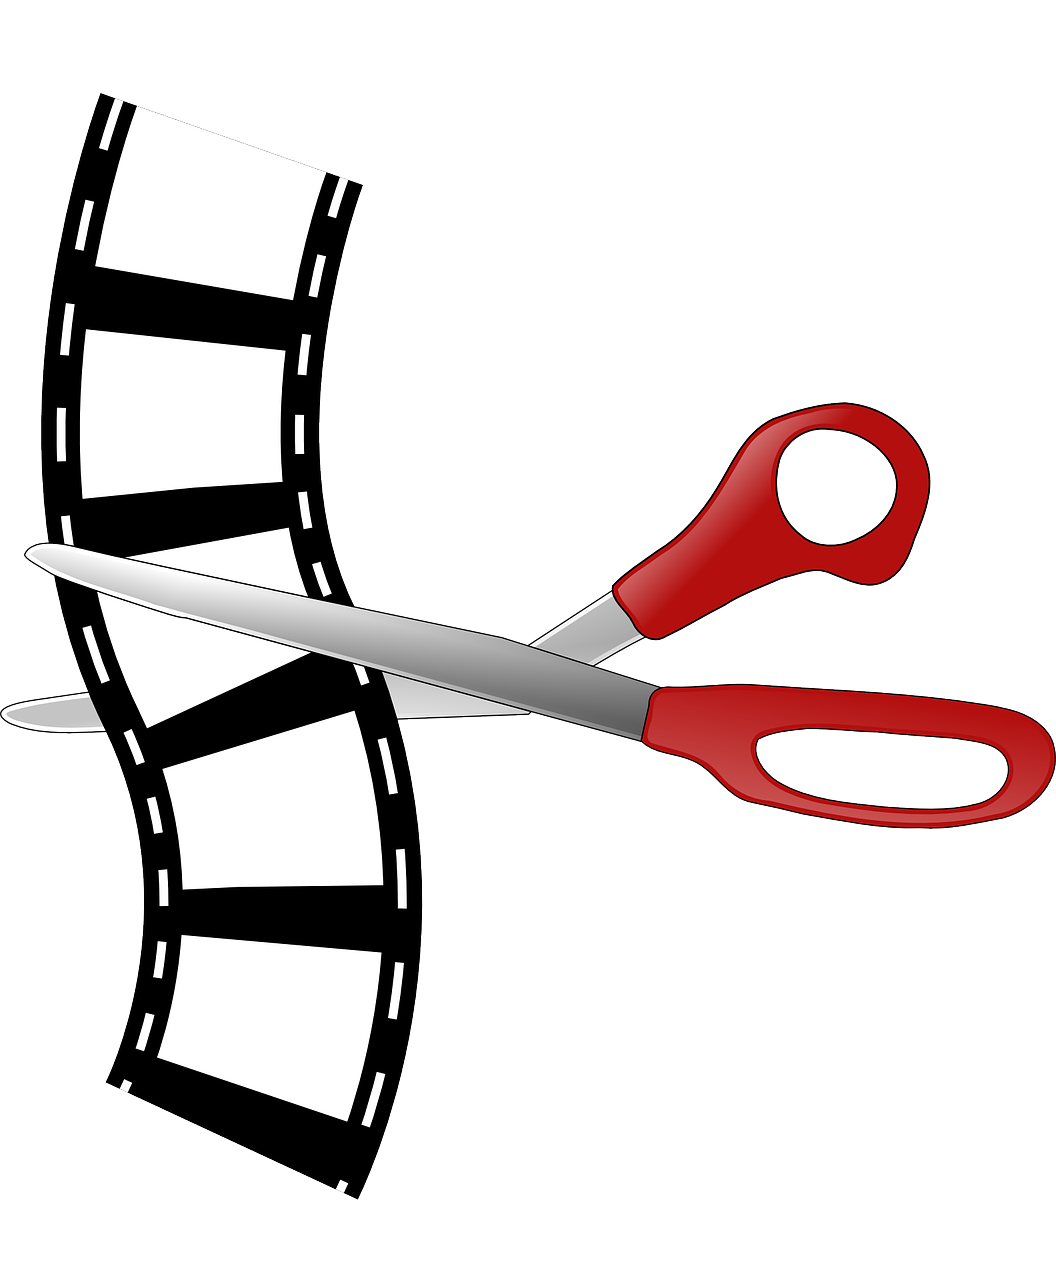 How to Cut Out a Video Clip